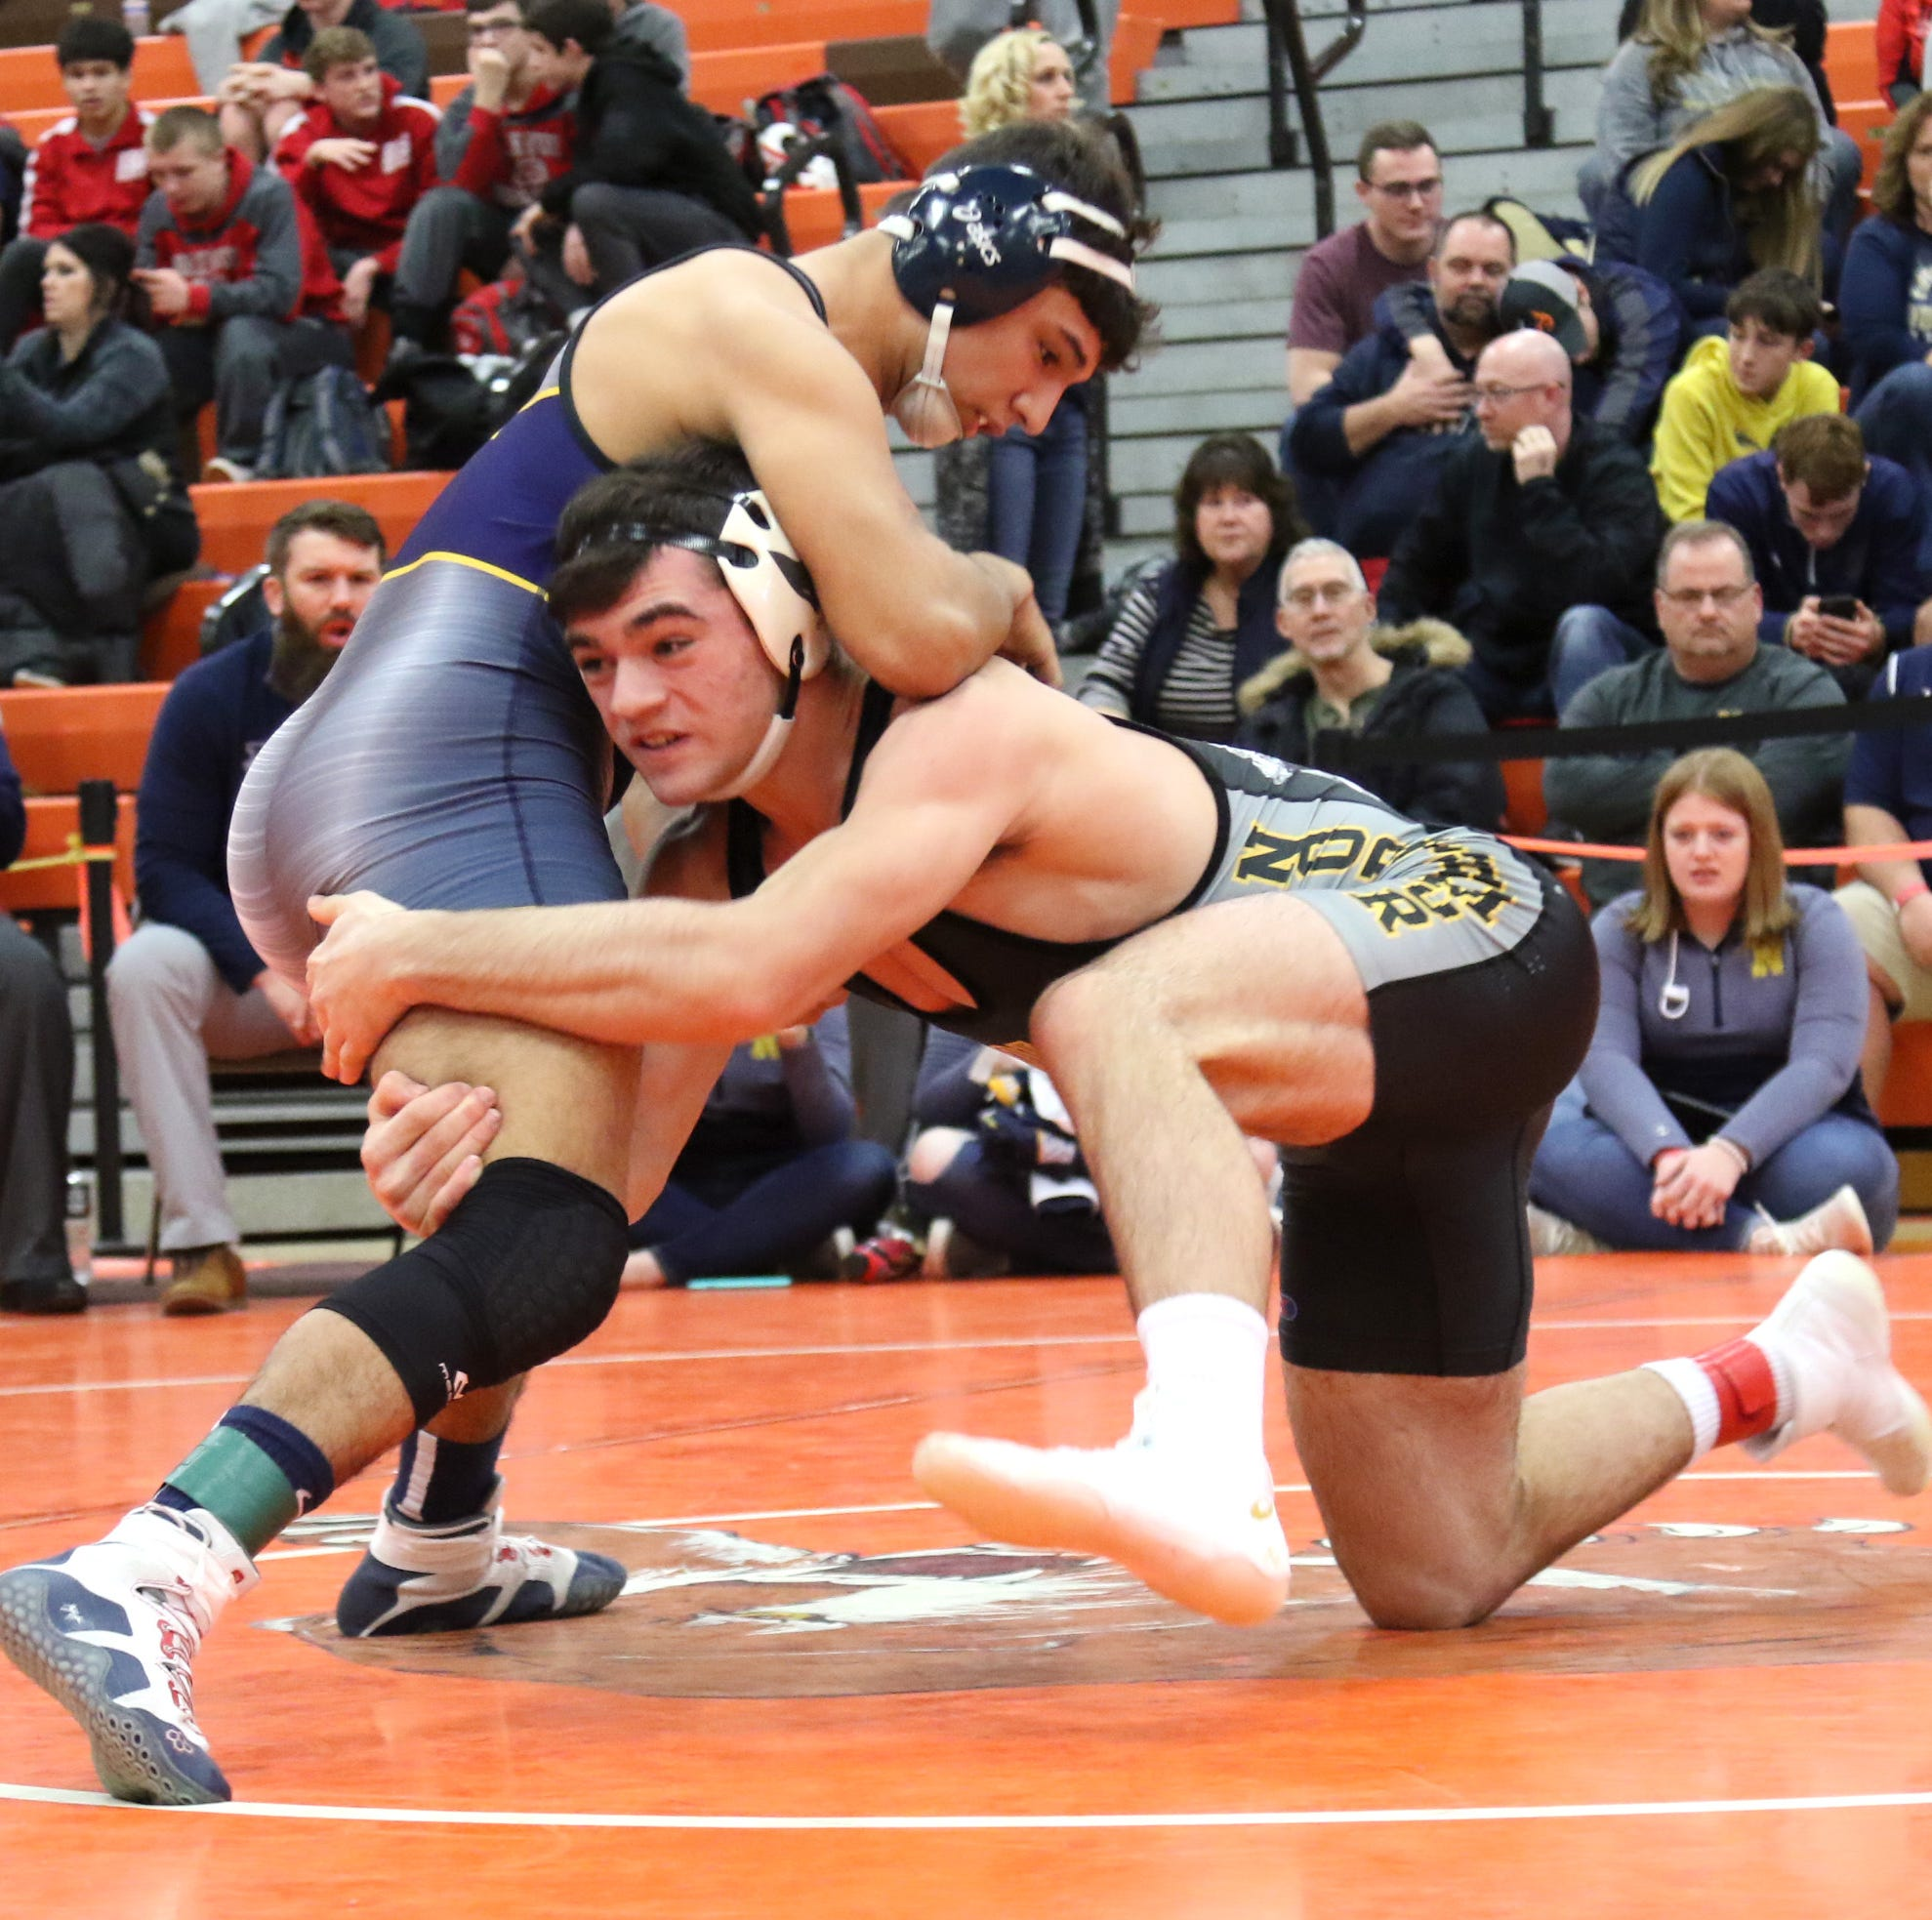 Oh, brother: Younger Becker filling shoes of state runner-up sibling